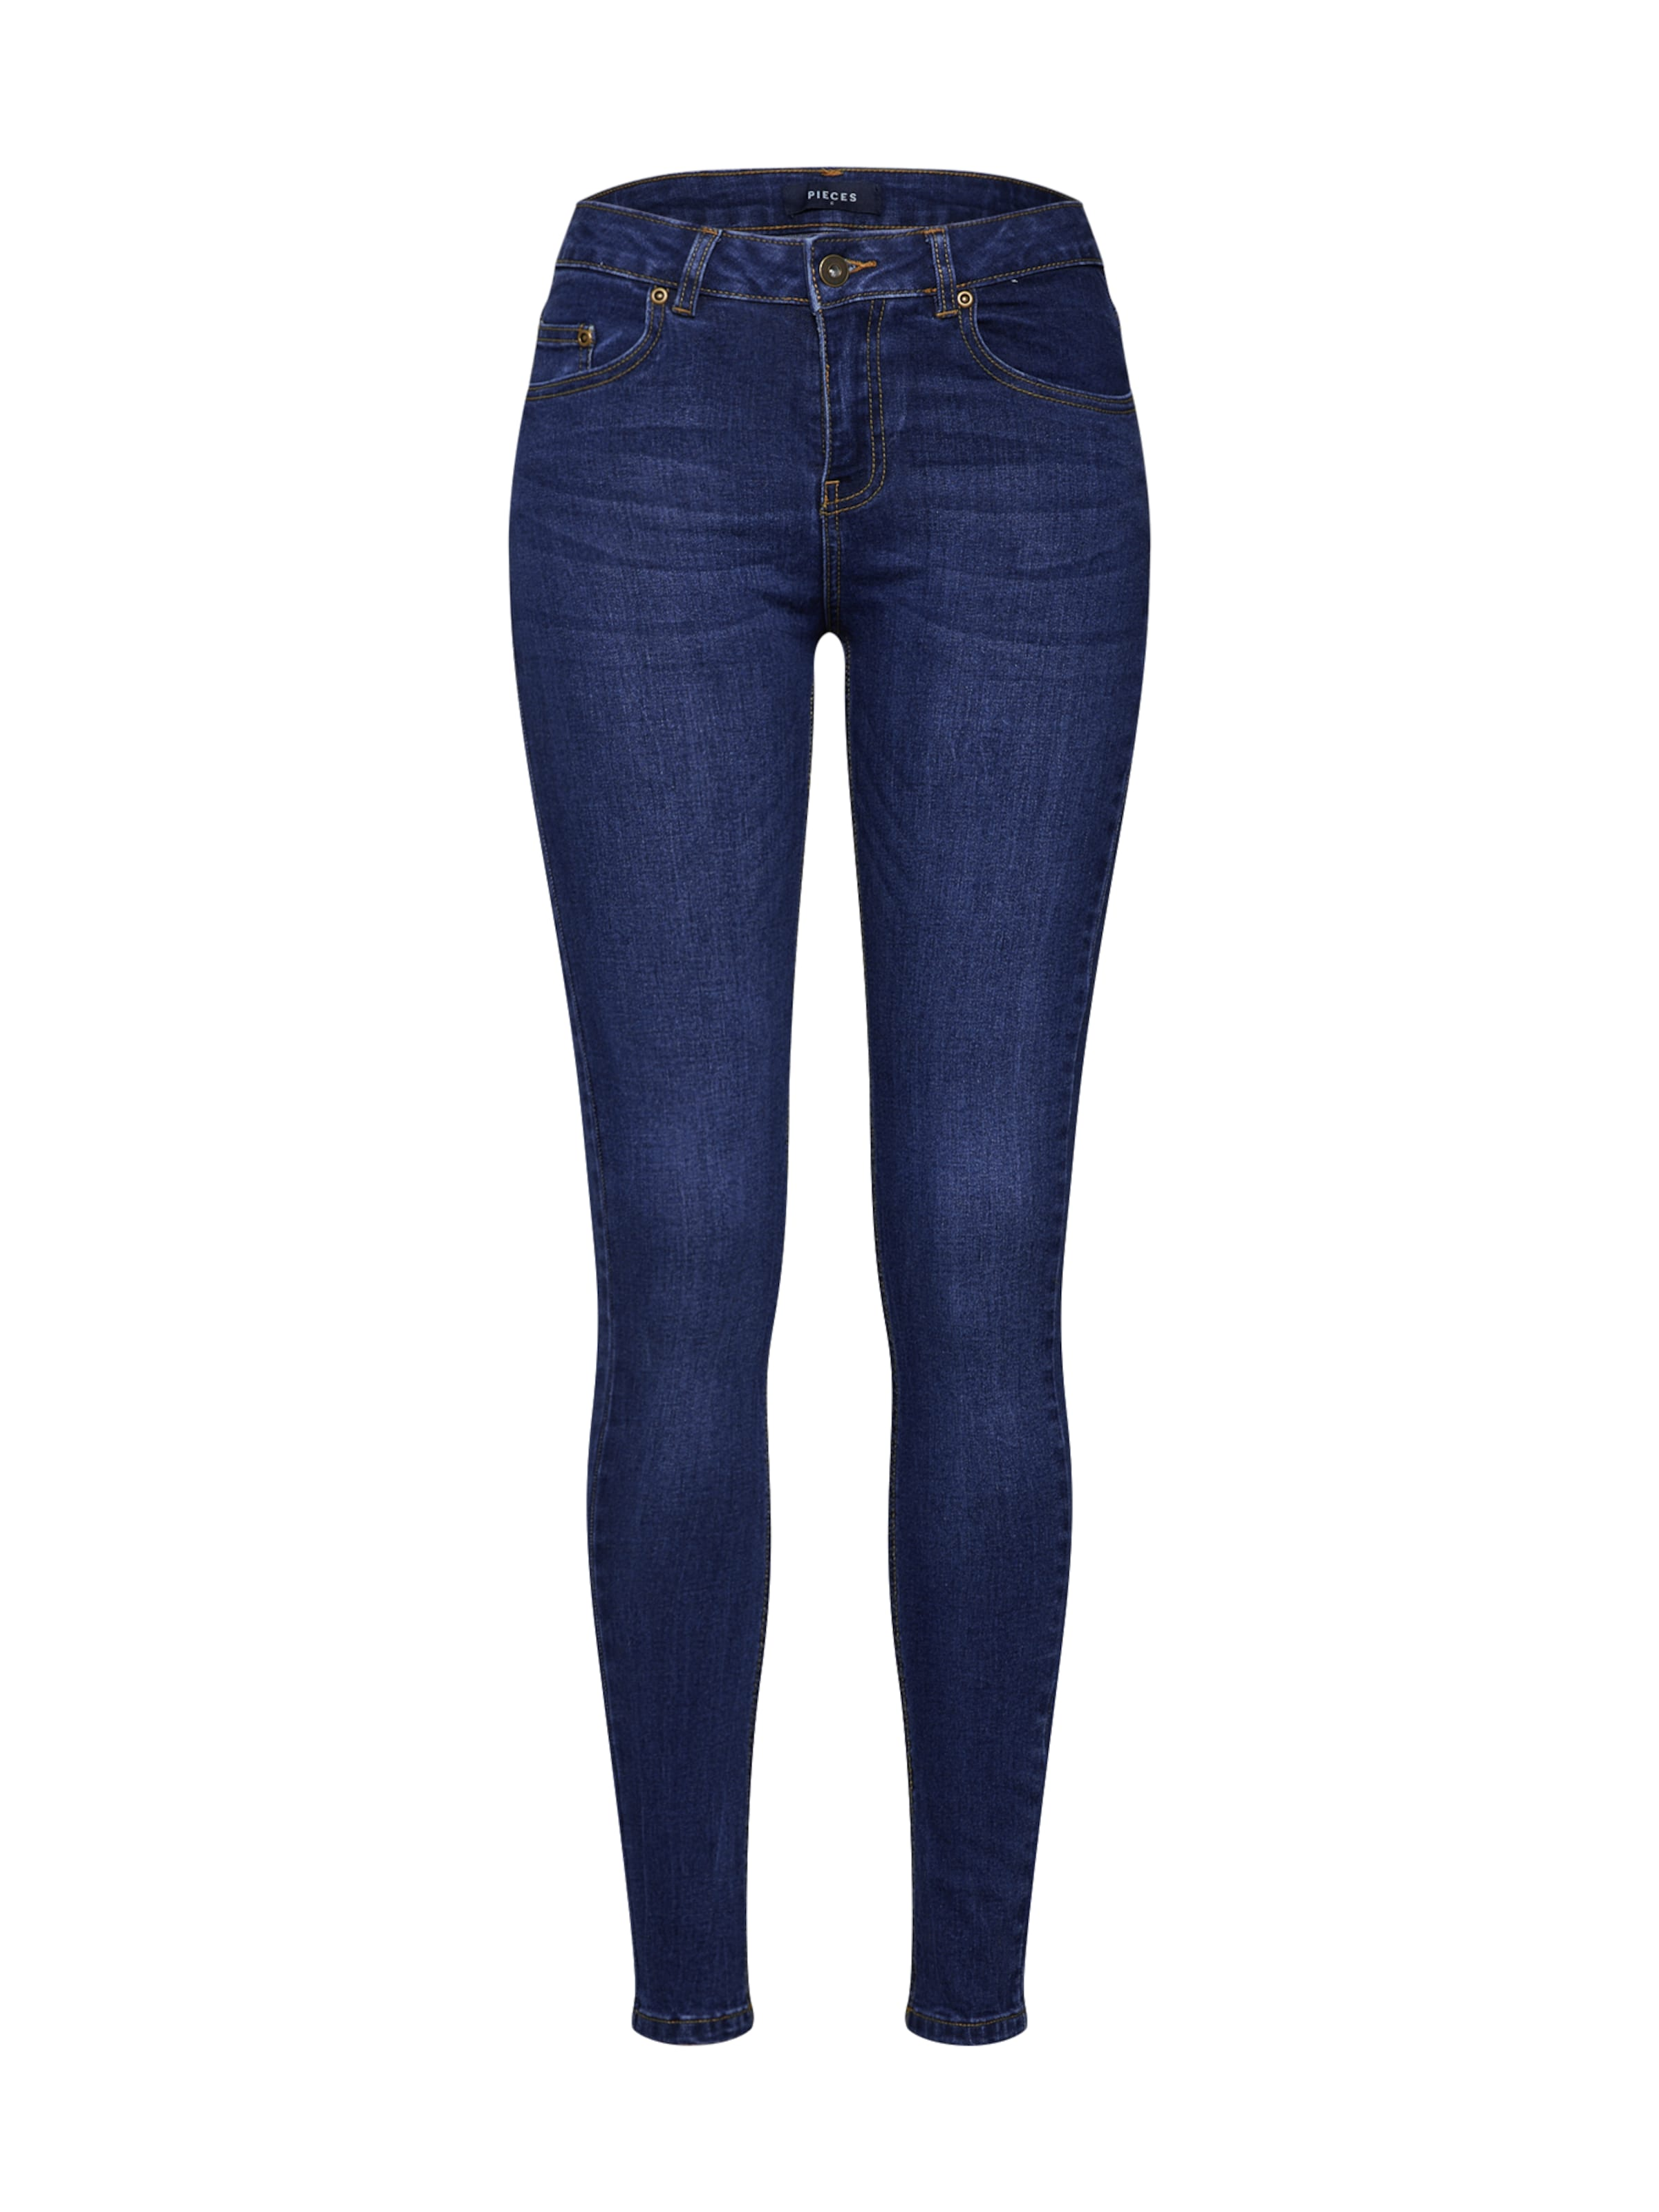 Pieces in Tb' Denim Jean En 'db300 Bleu XiPZukO